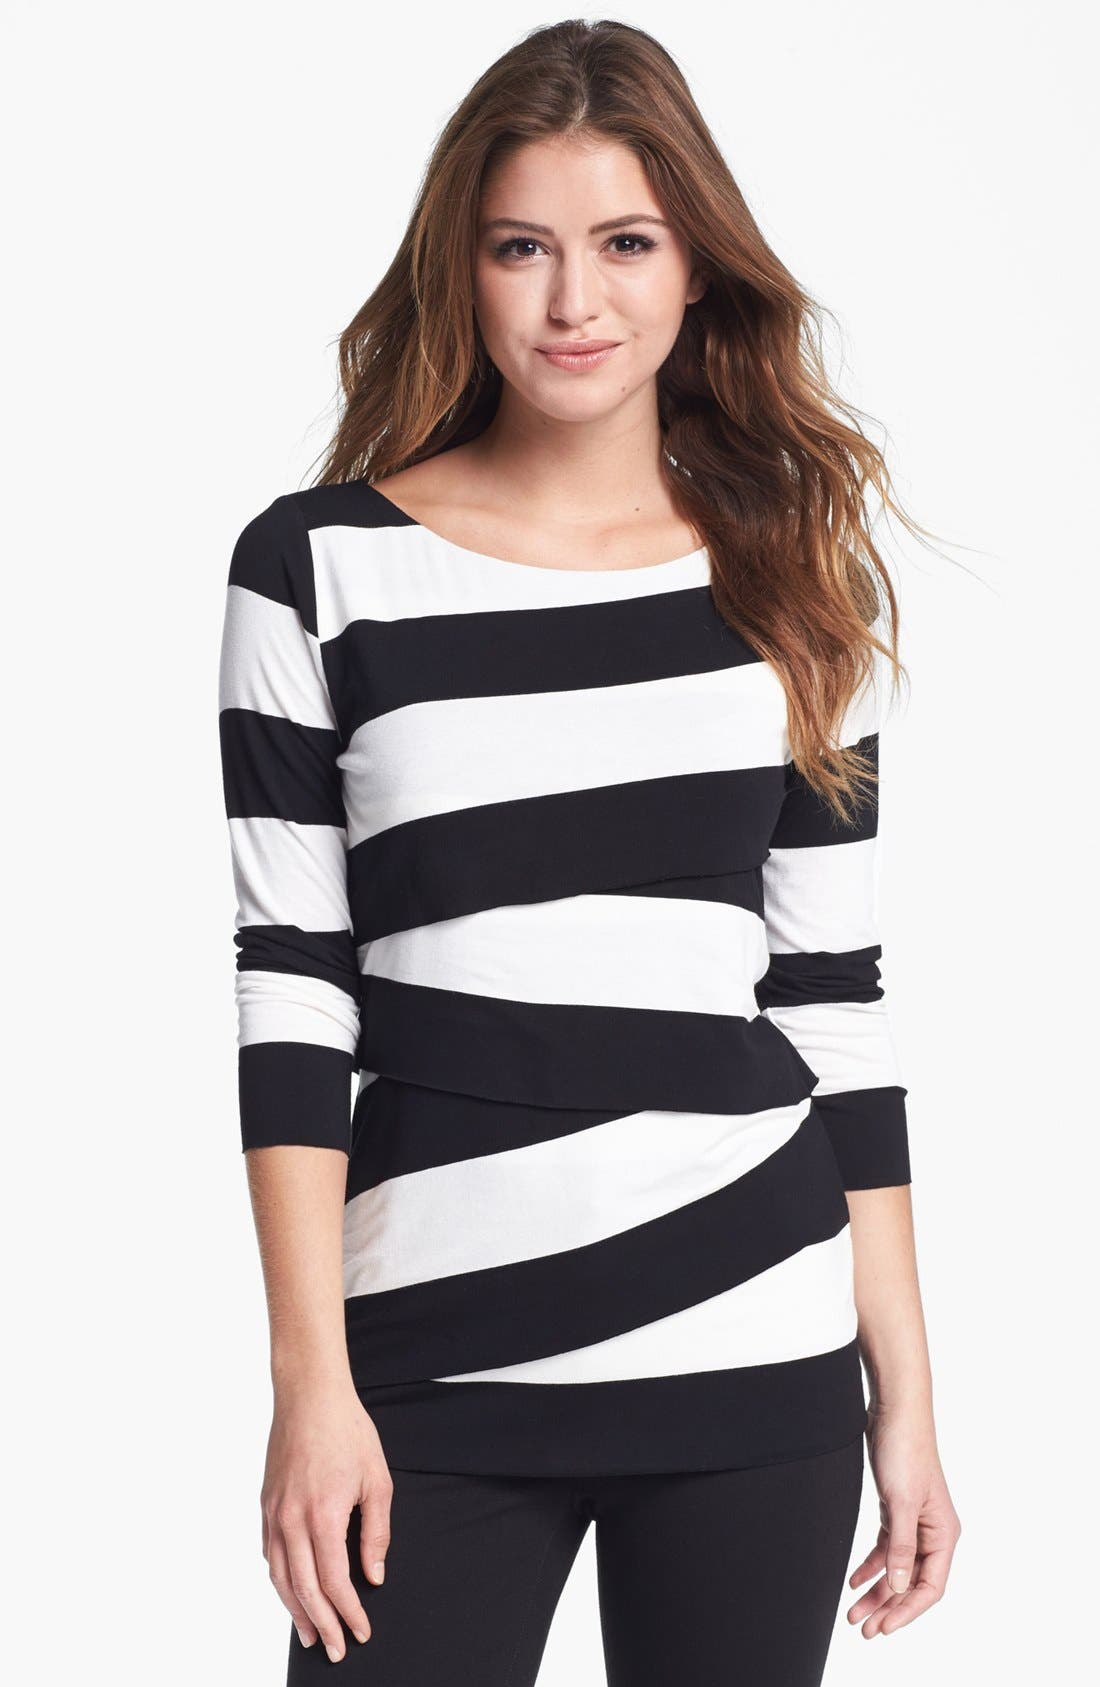 Alternate Image 1 Selected - Vince Camuto Asymmetrical Tiered Stripe Tee (Petite)